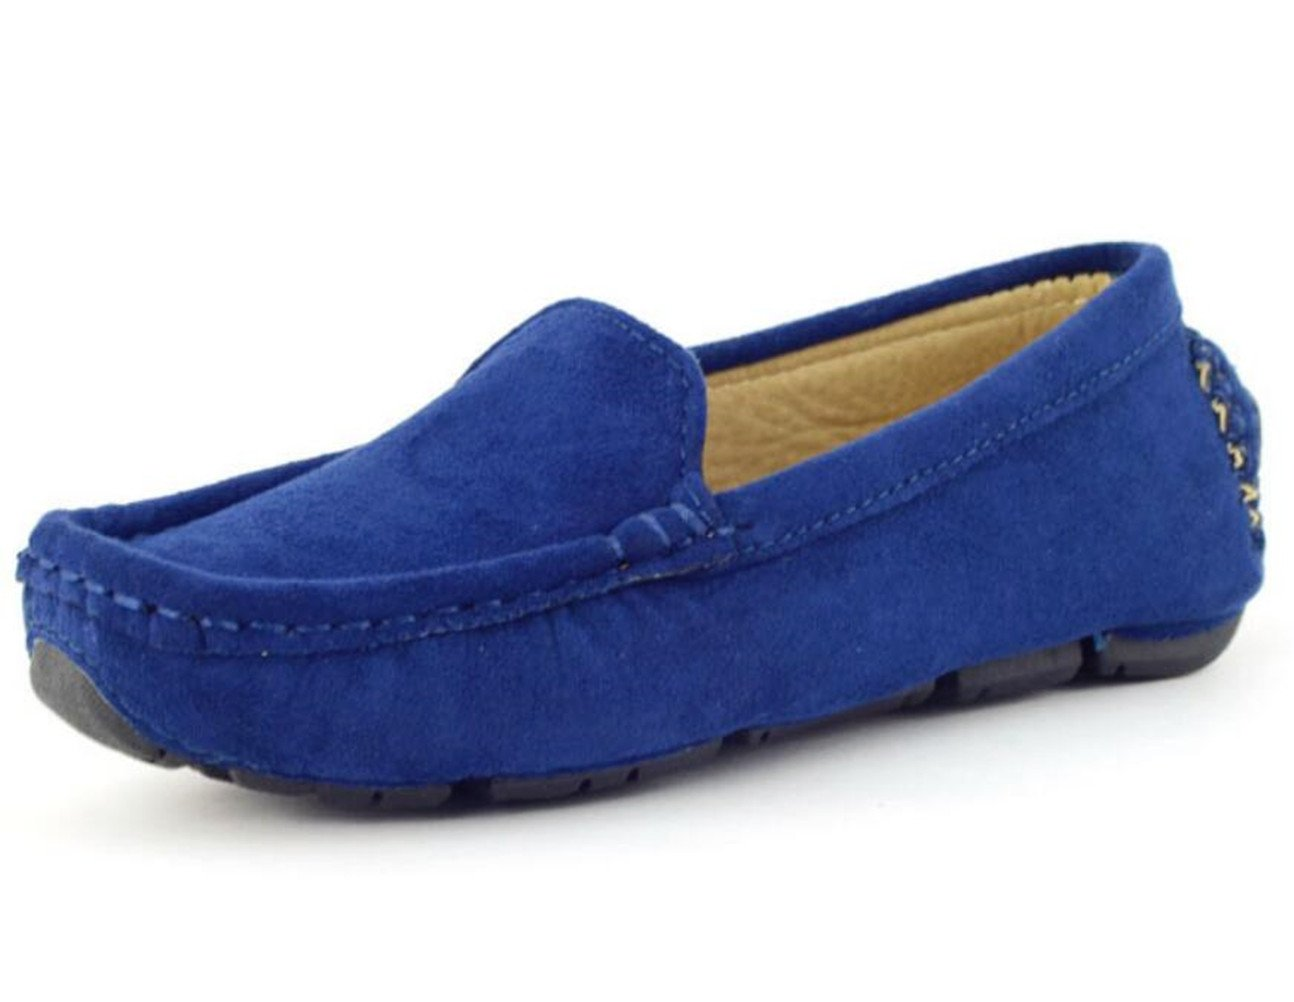 DADAWEN Girl's Boy's Suede Slip-on Loafers Oxford Shoes Blue US Size 3 M Little Kid